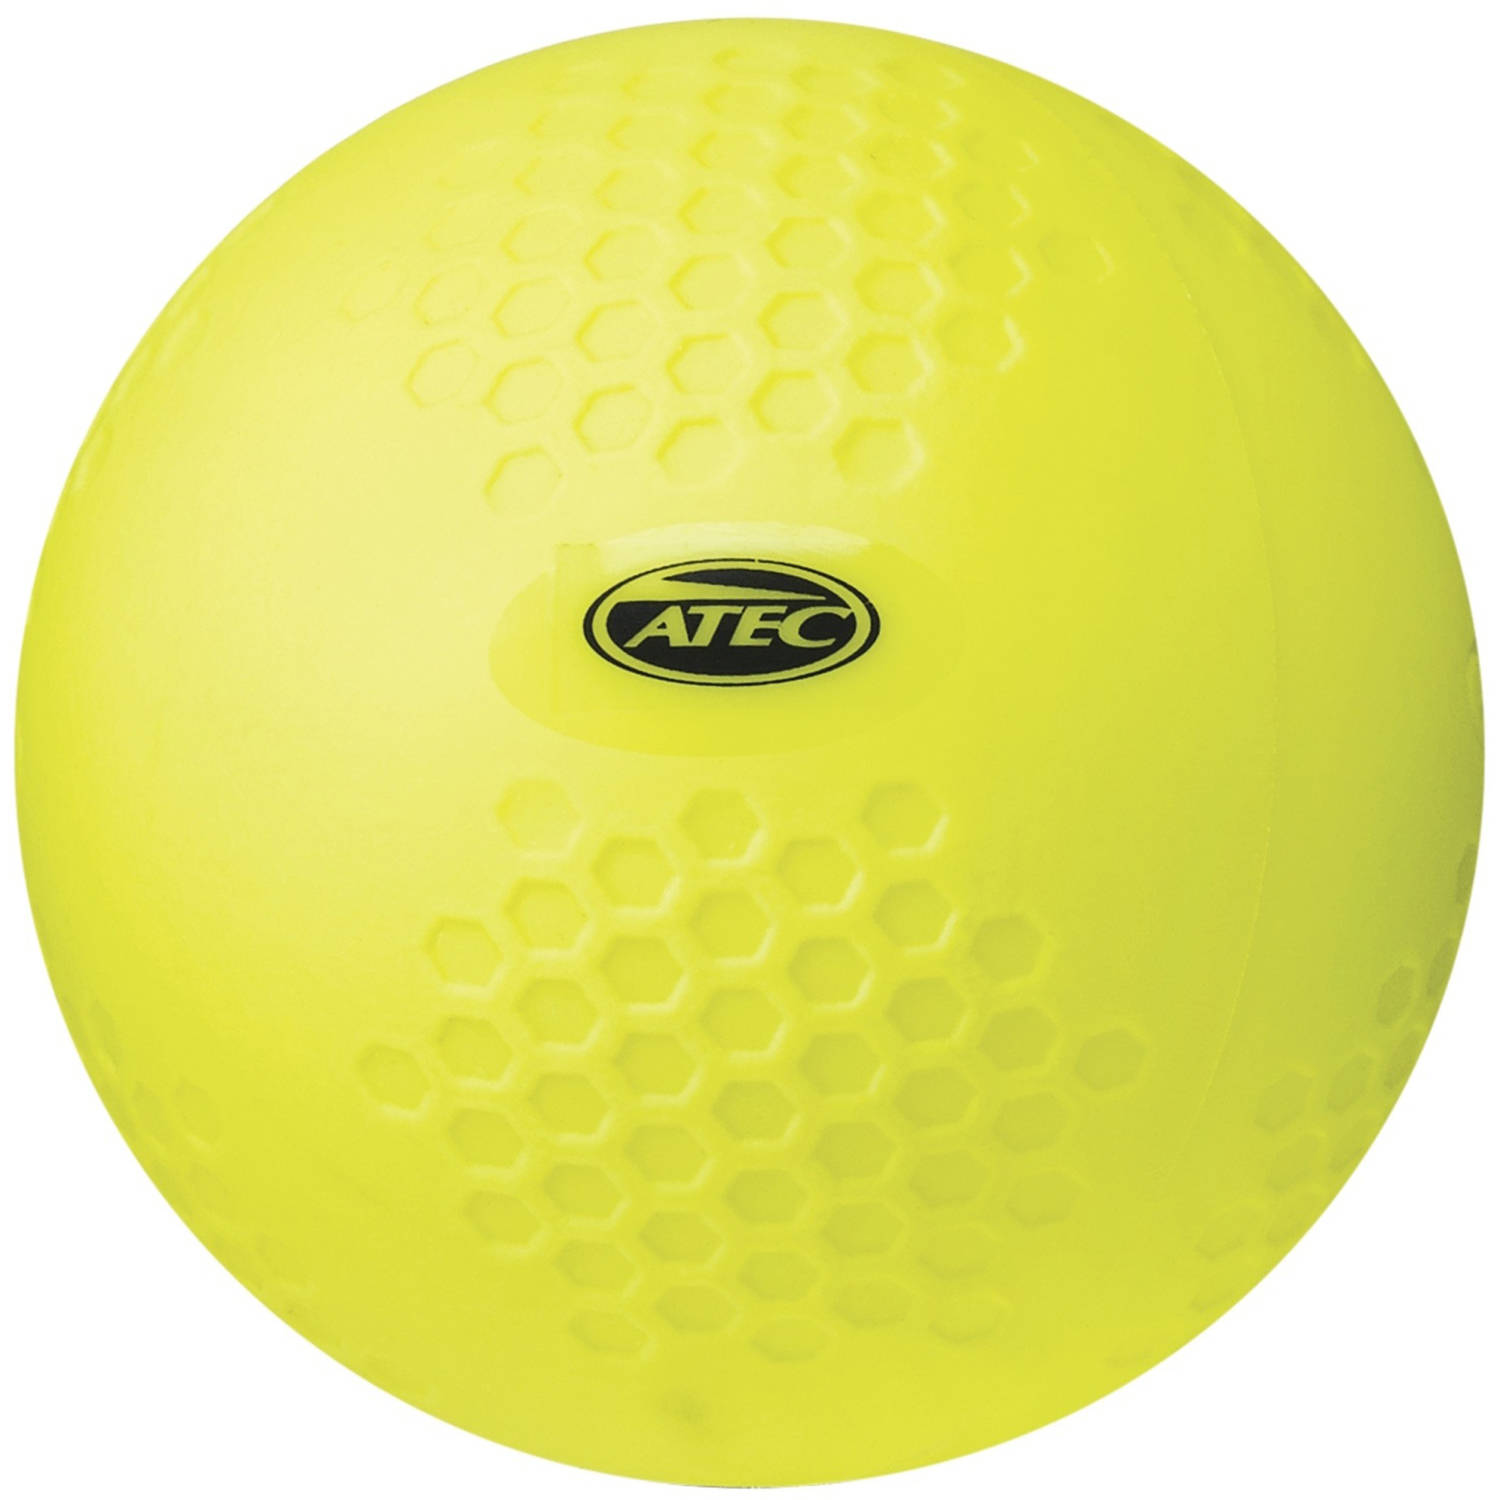 ATEC Hi.Per Power Weighted Training Baseball, Set of 4